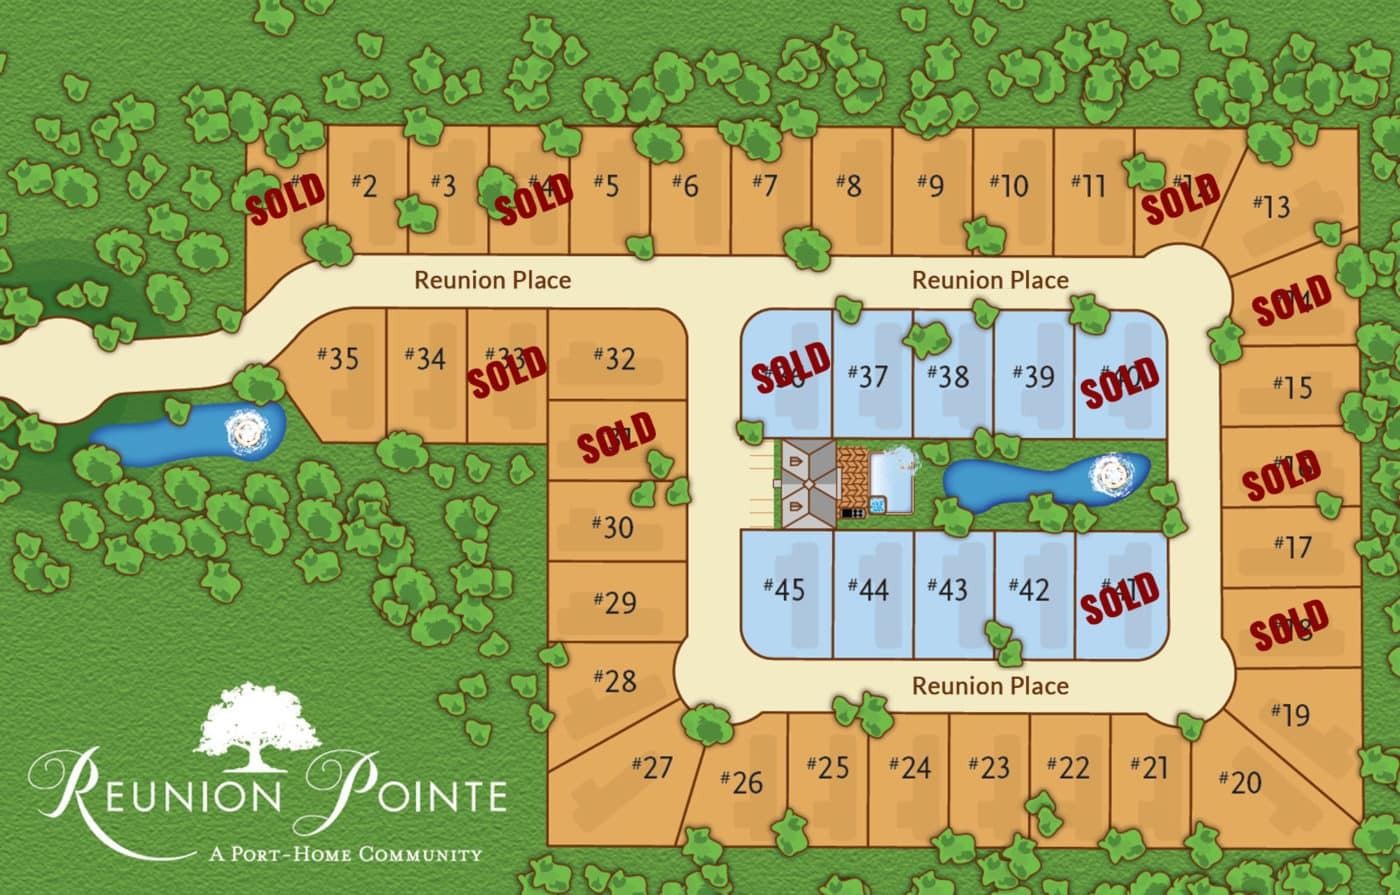 Lot plan for Reunion Pointe RV Port-Home Community